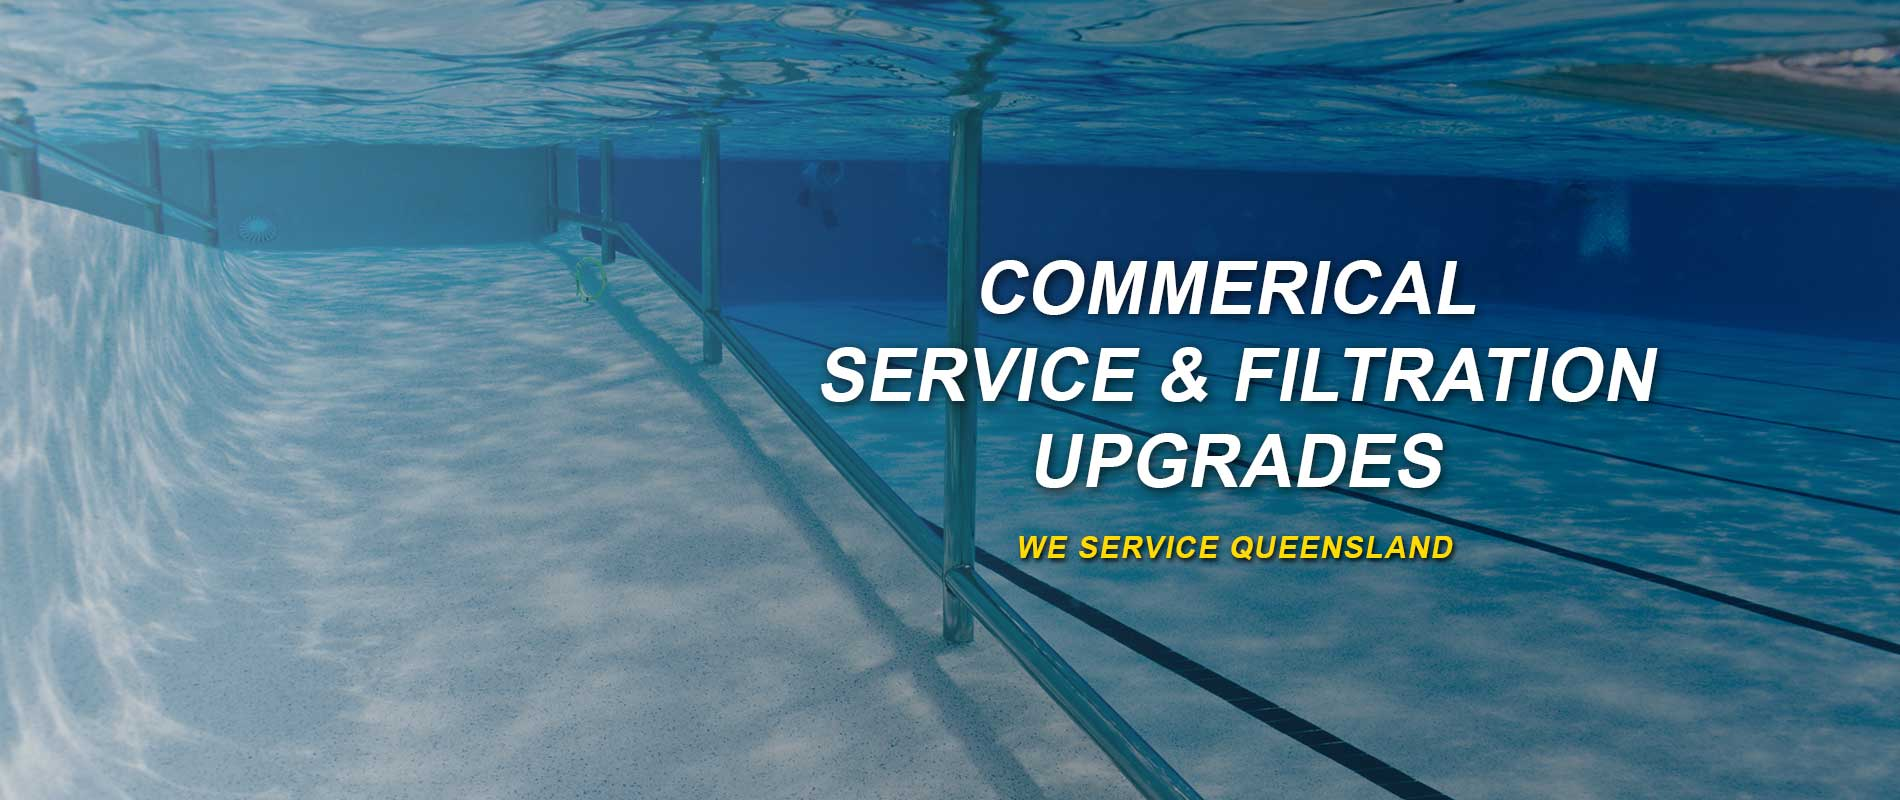 Commercial Service & Filtration Upgrades